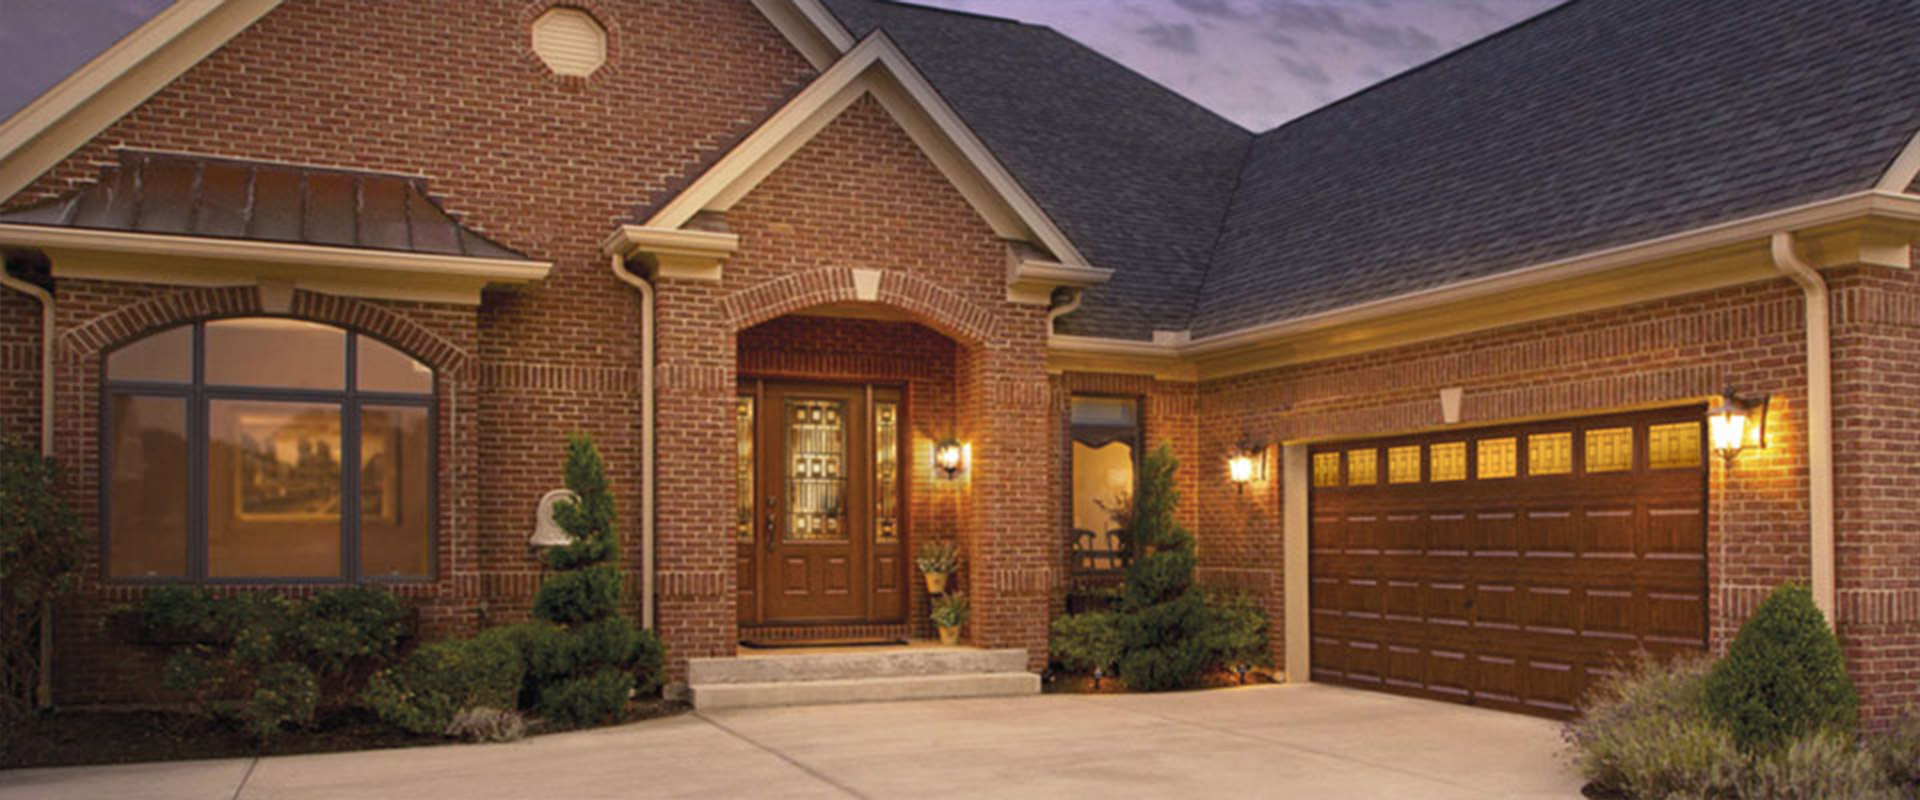 Complete The Look Of Your Home With A Gorgeous Garage Door